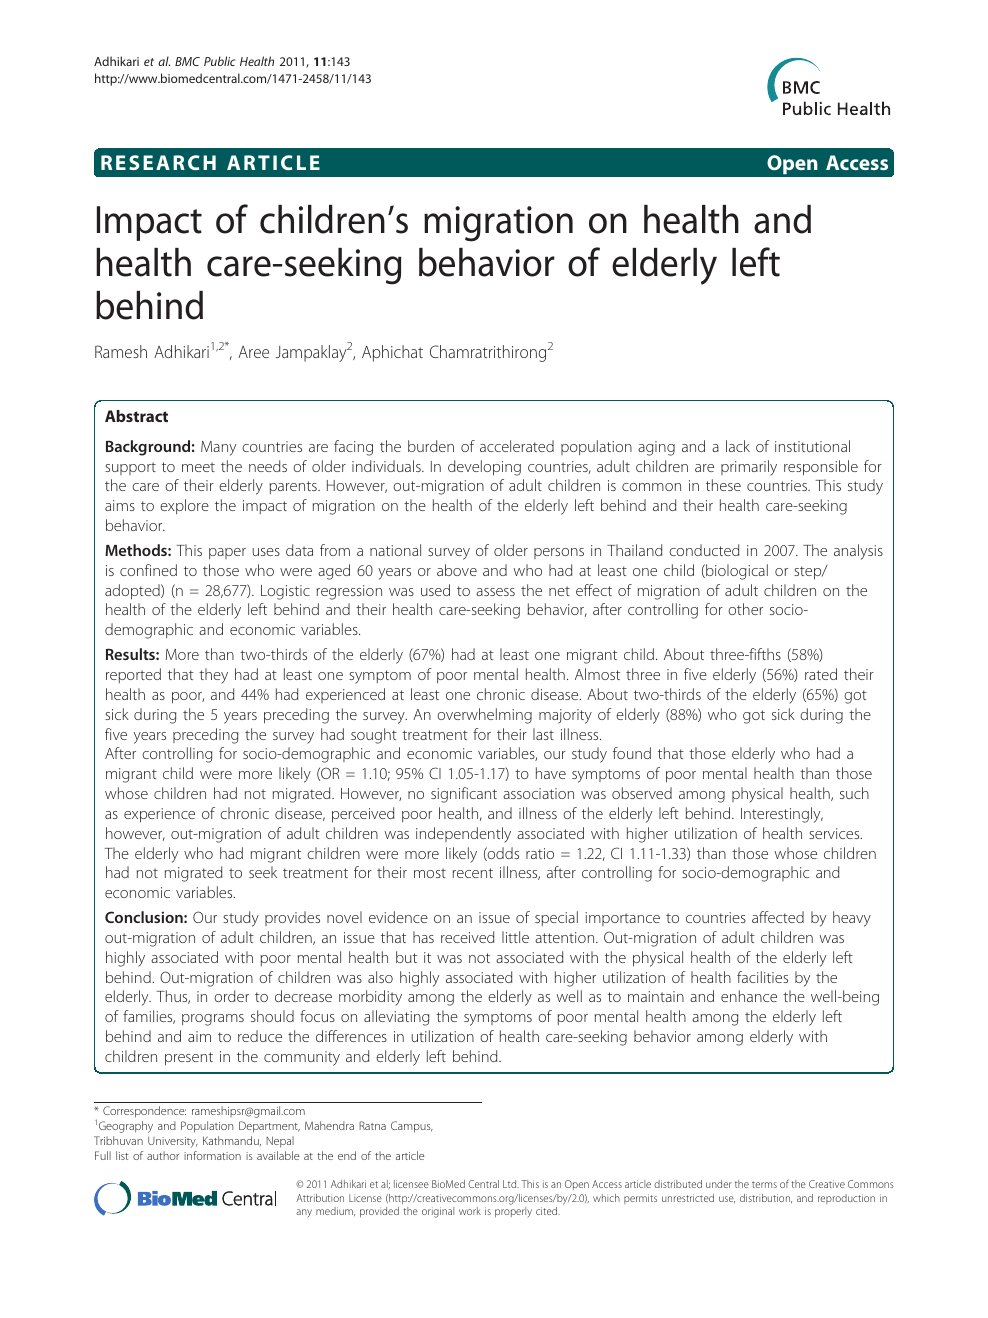 Impact of children's migration on health and health care